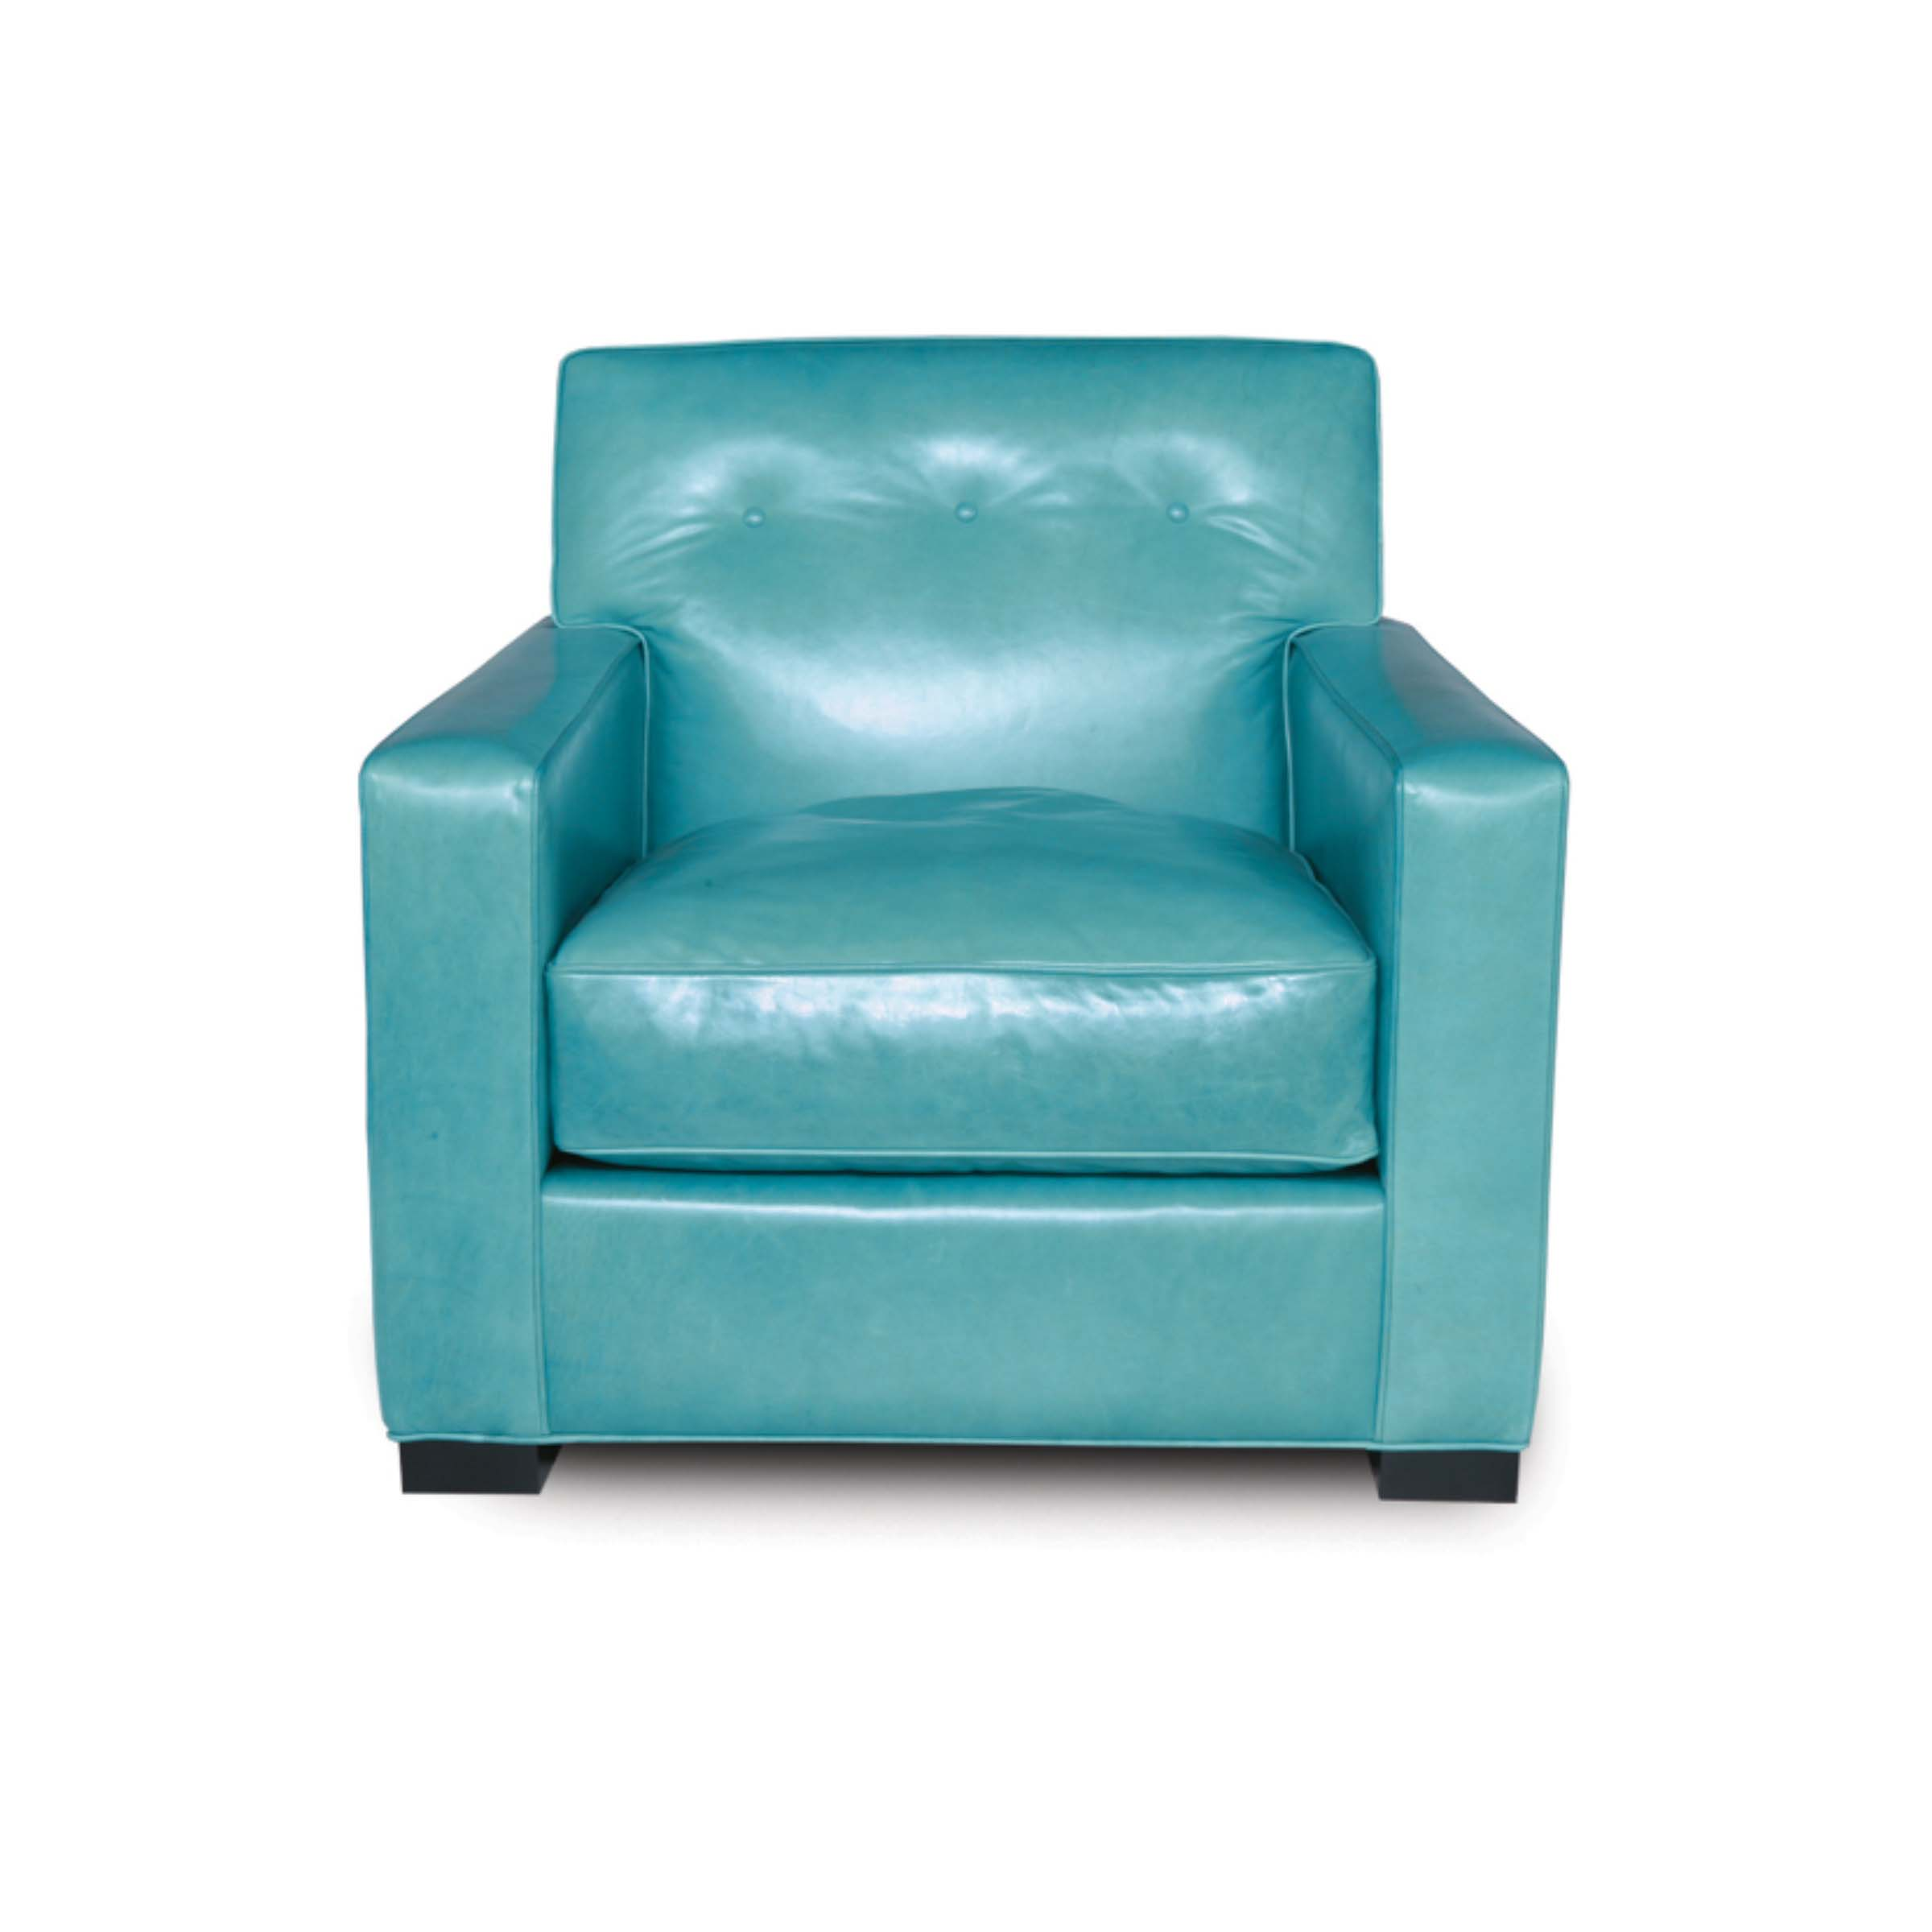 KELLY - 1E Accent Chair Cartier Caribbean